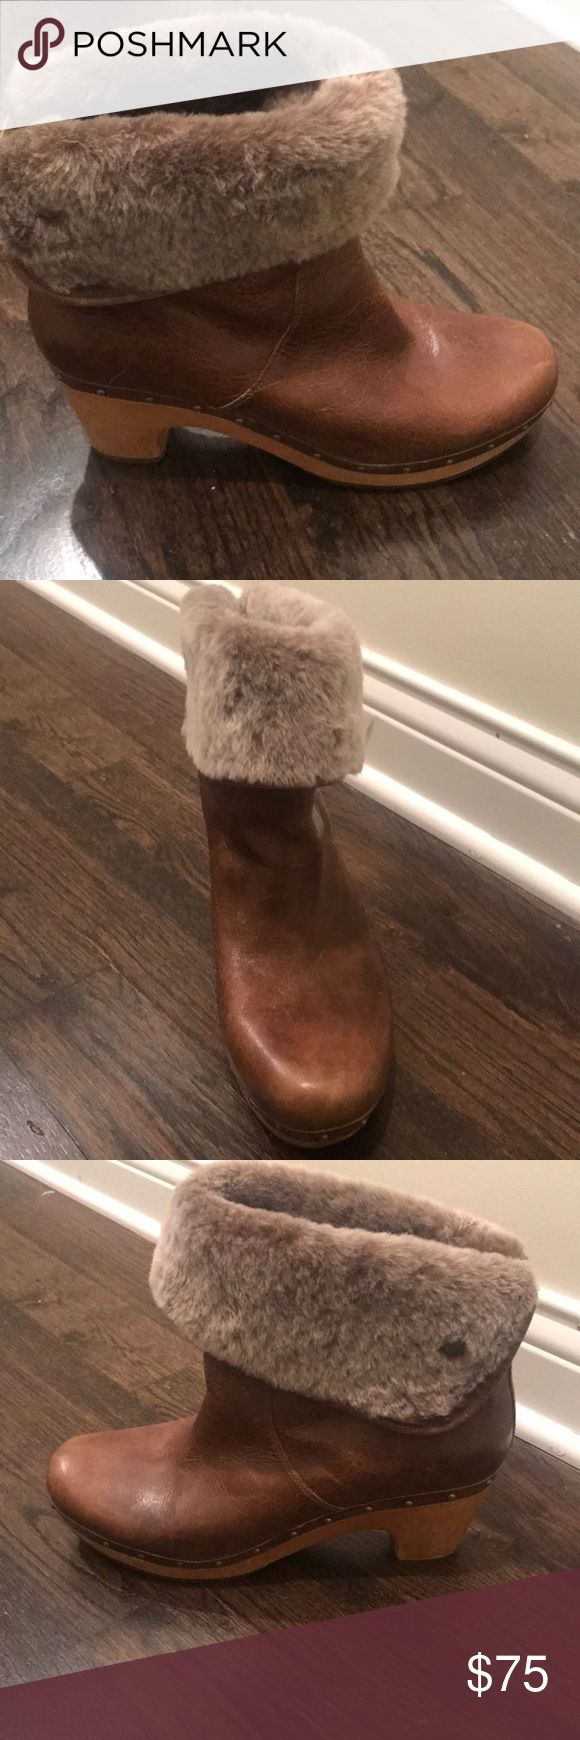 UGG AUSTRALIA LYNNEA SHEARLING LINED ANKLE BOOT Size 12. Perfect Condition. Worn once so like new. Don't have original box. UGG Shoes Heeled Boots